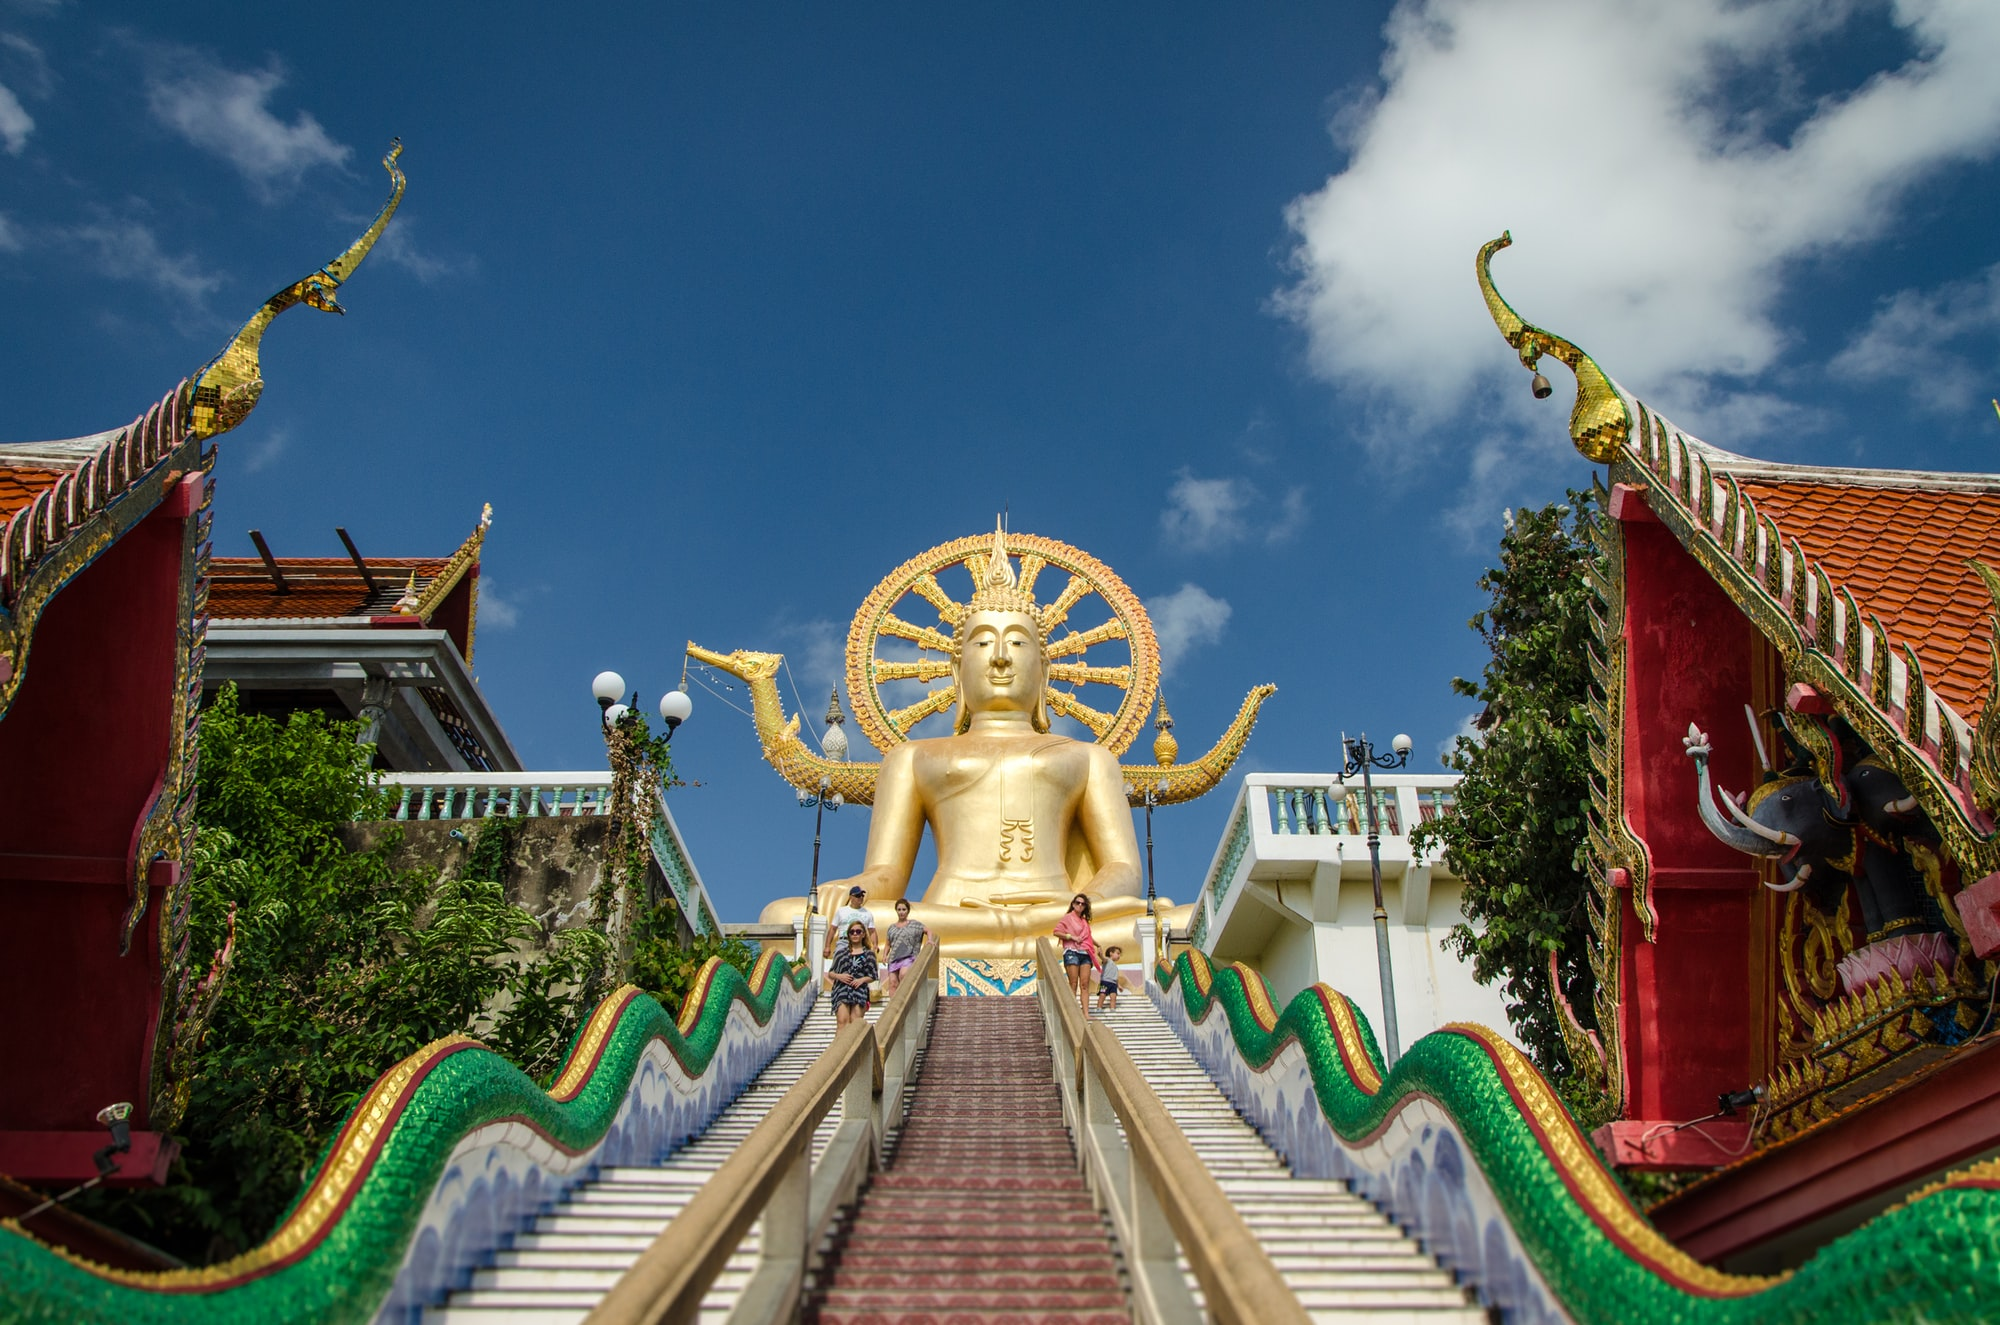 Stairs leading up to the Big Golden Buddha.